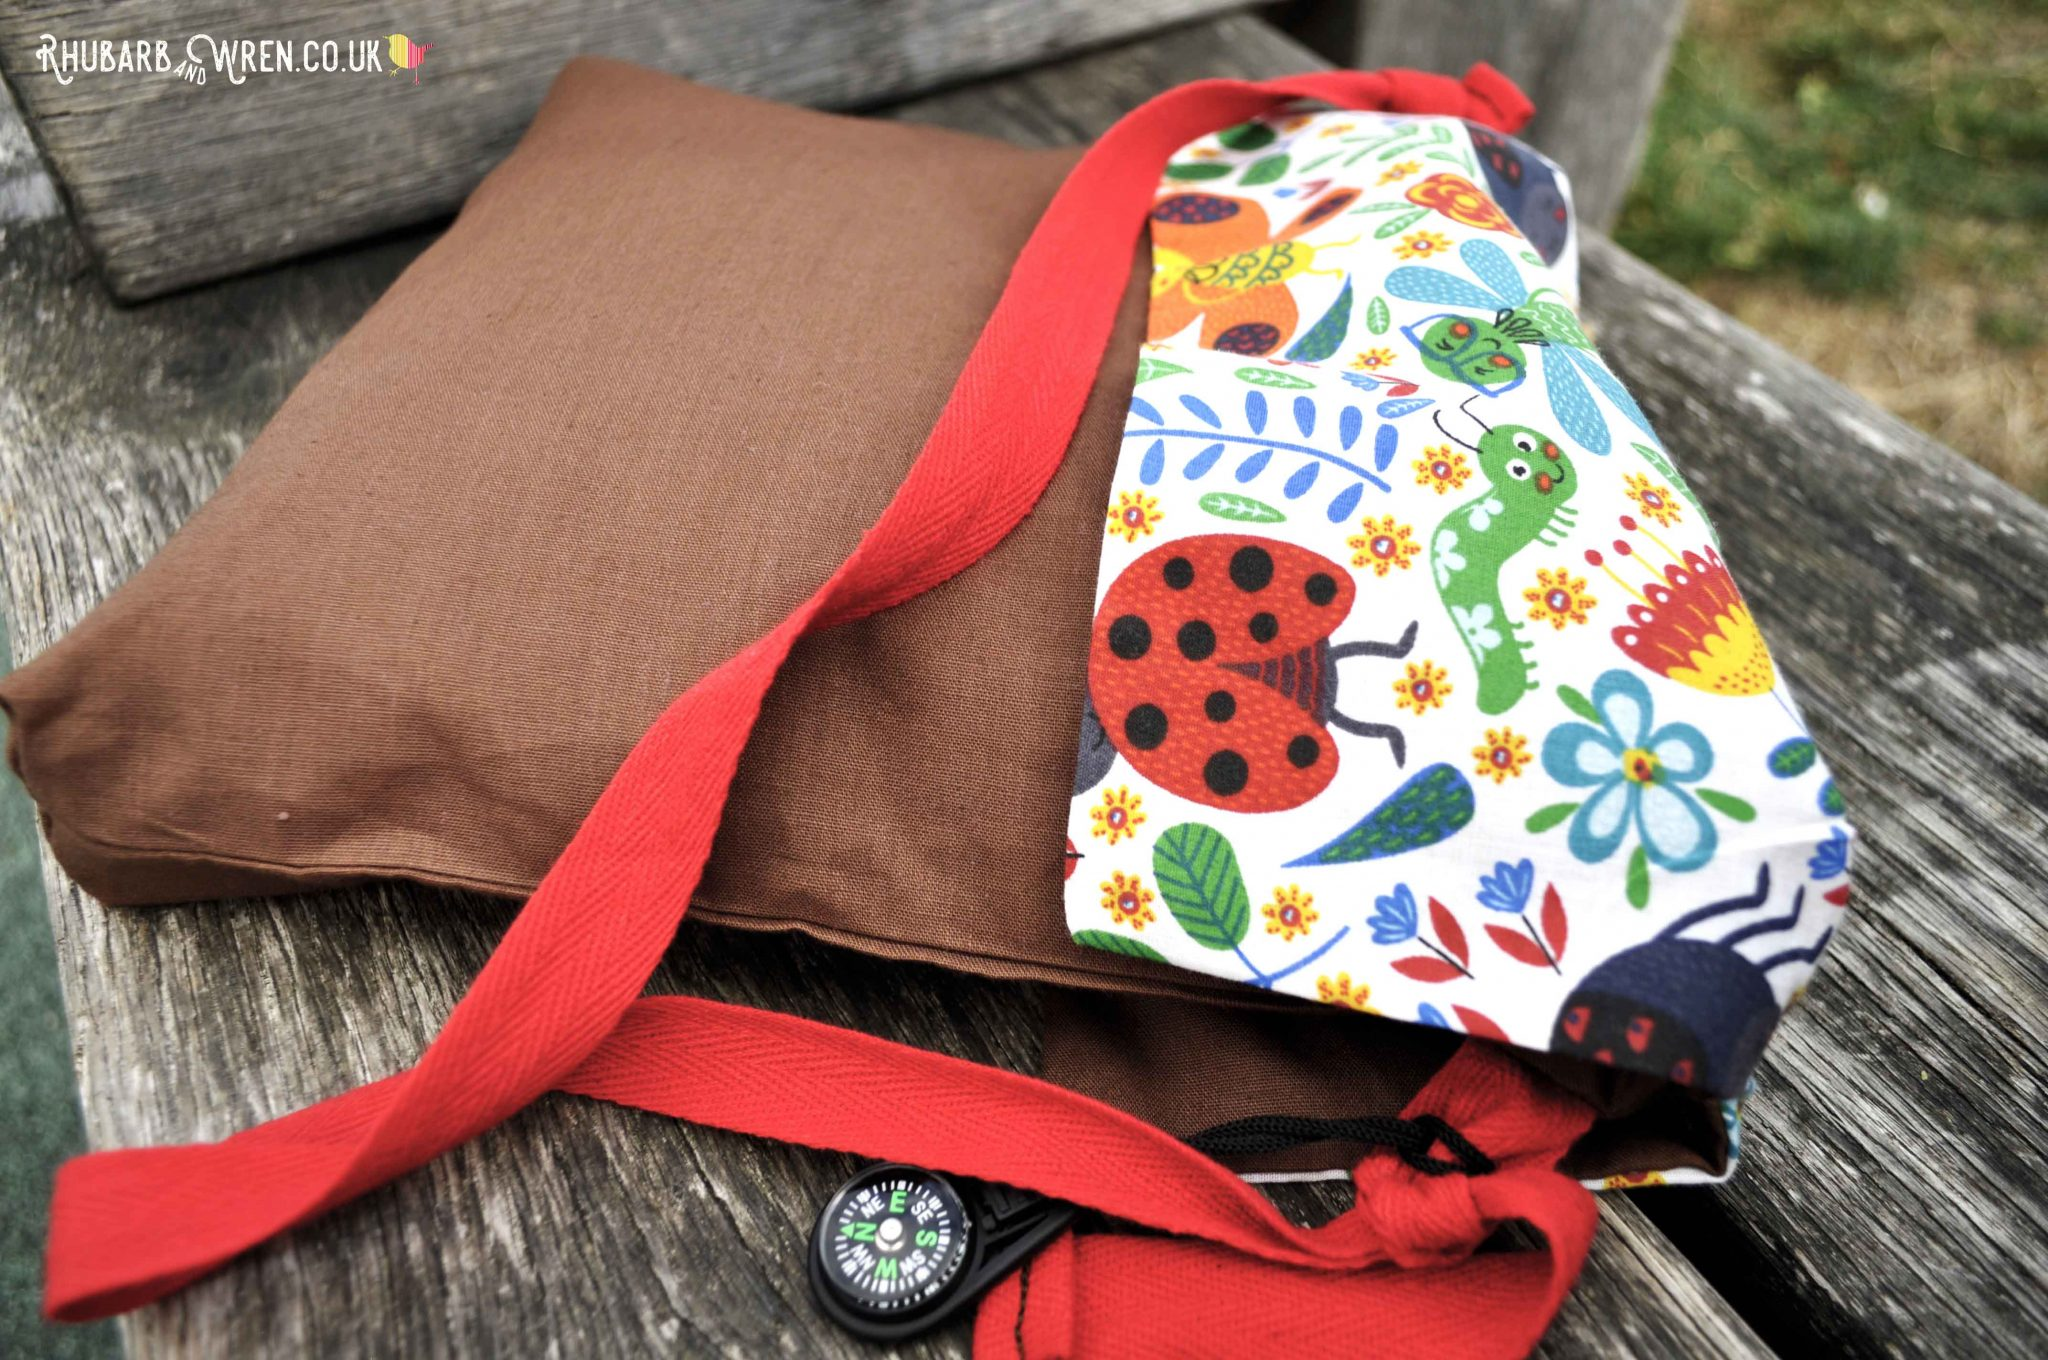 A homemade kids diy nature explorer bag with a mini compass